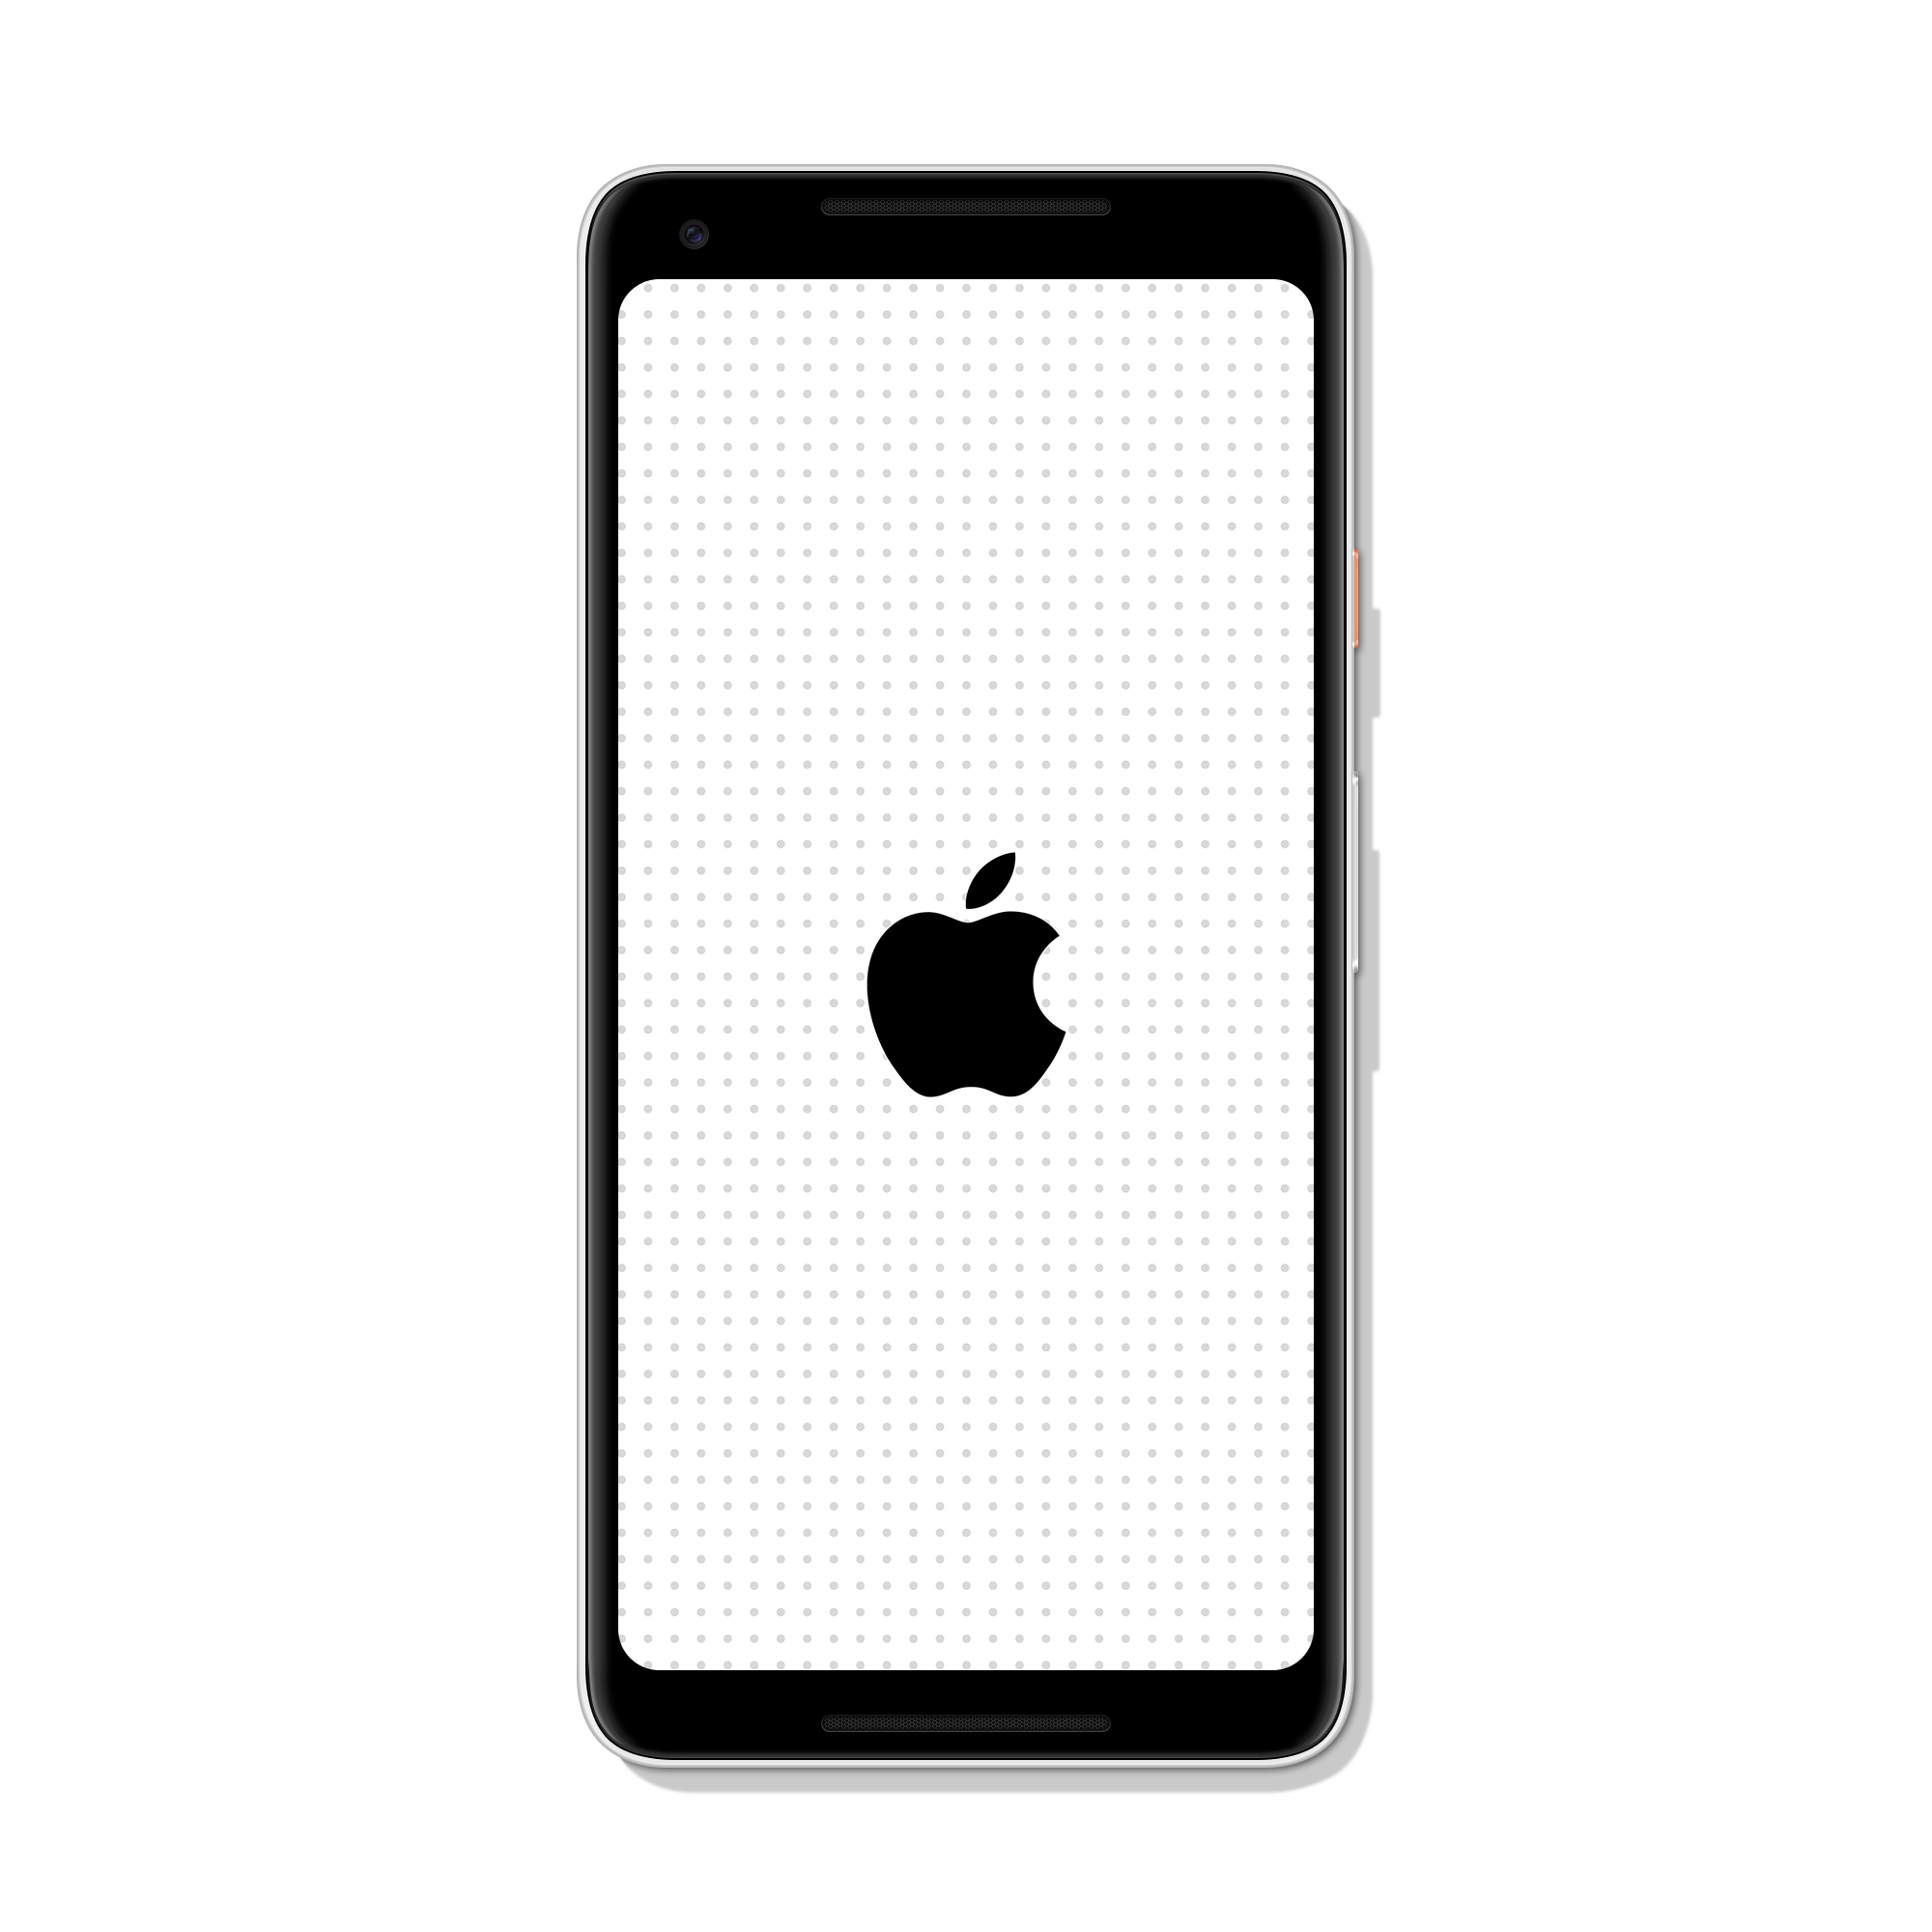 WWDC 18 – Wallpapers